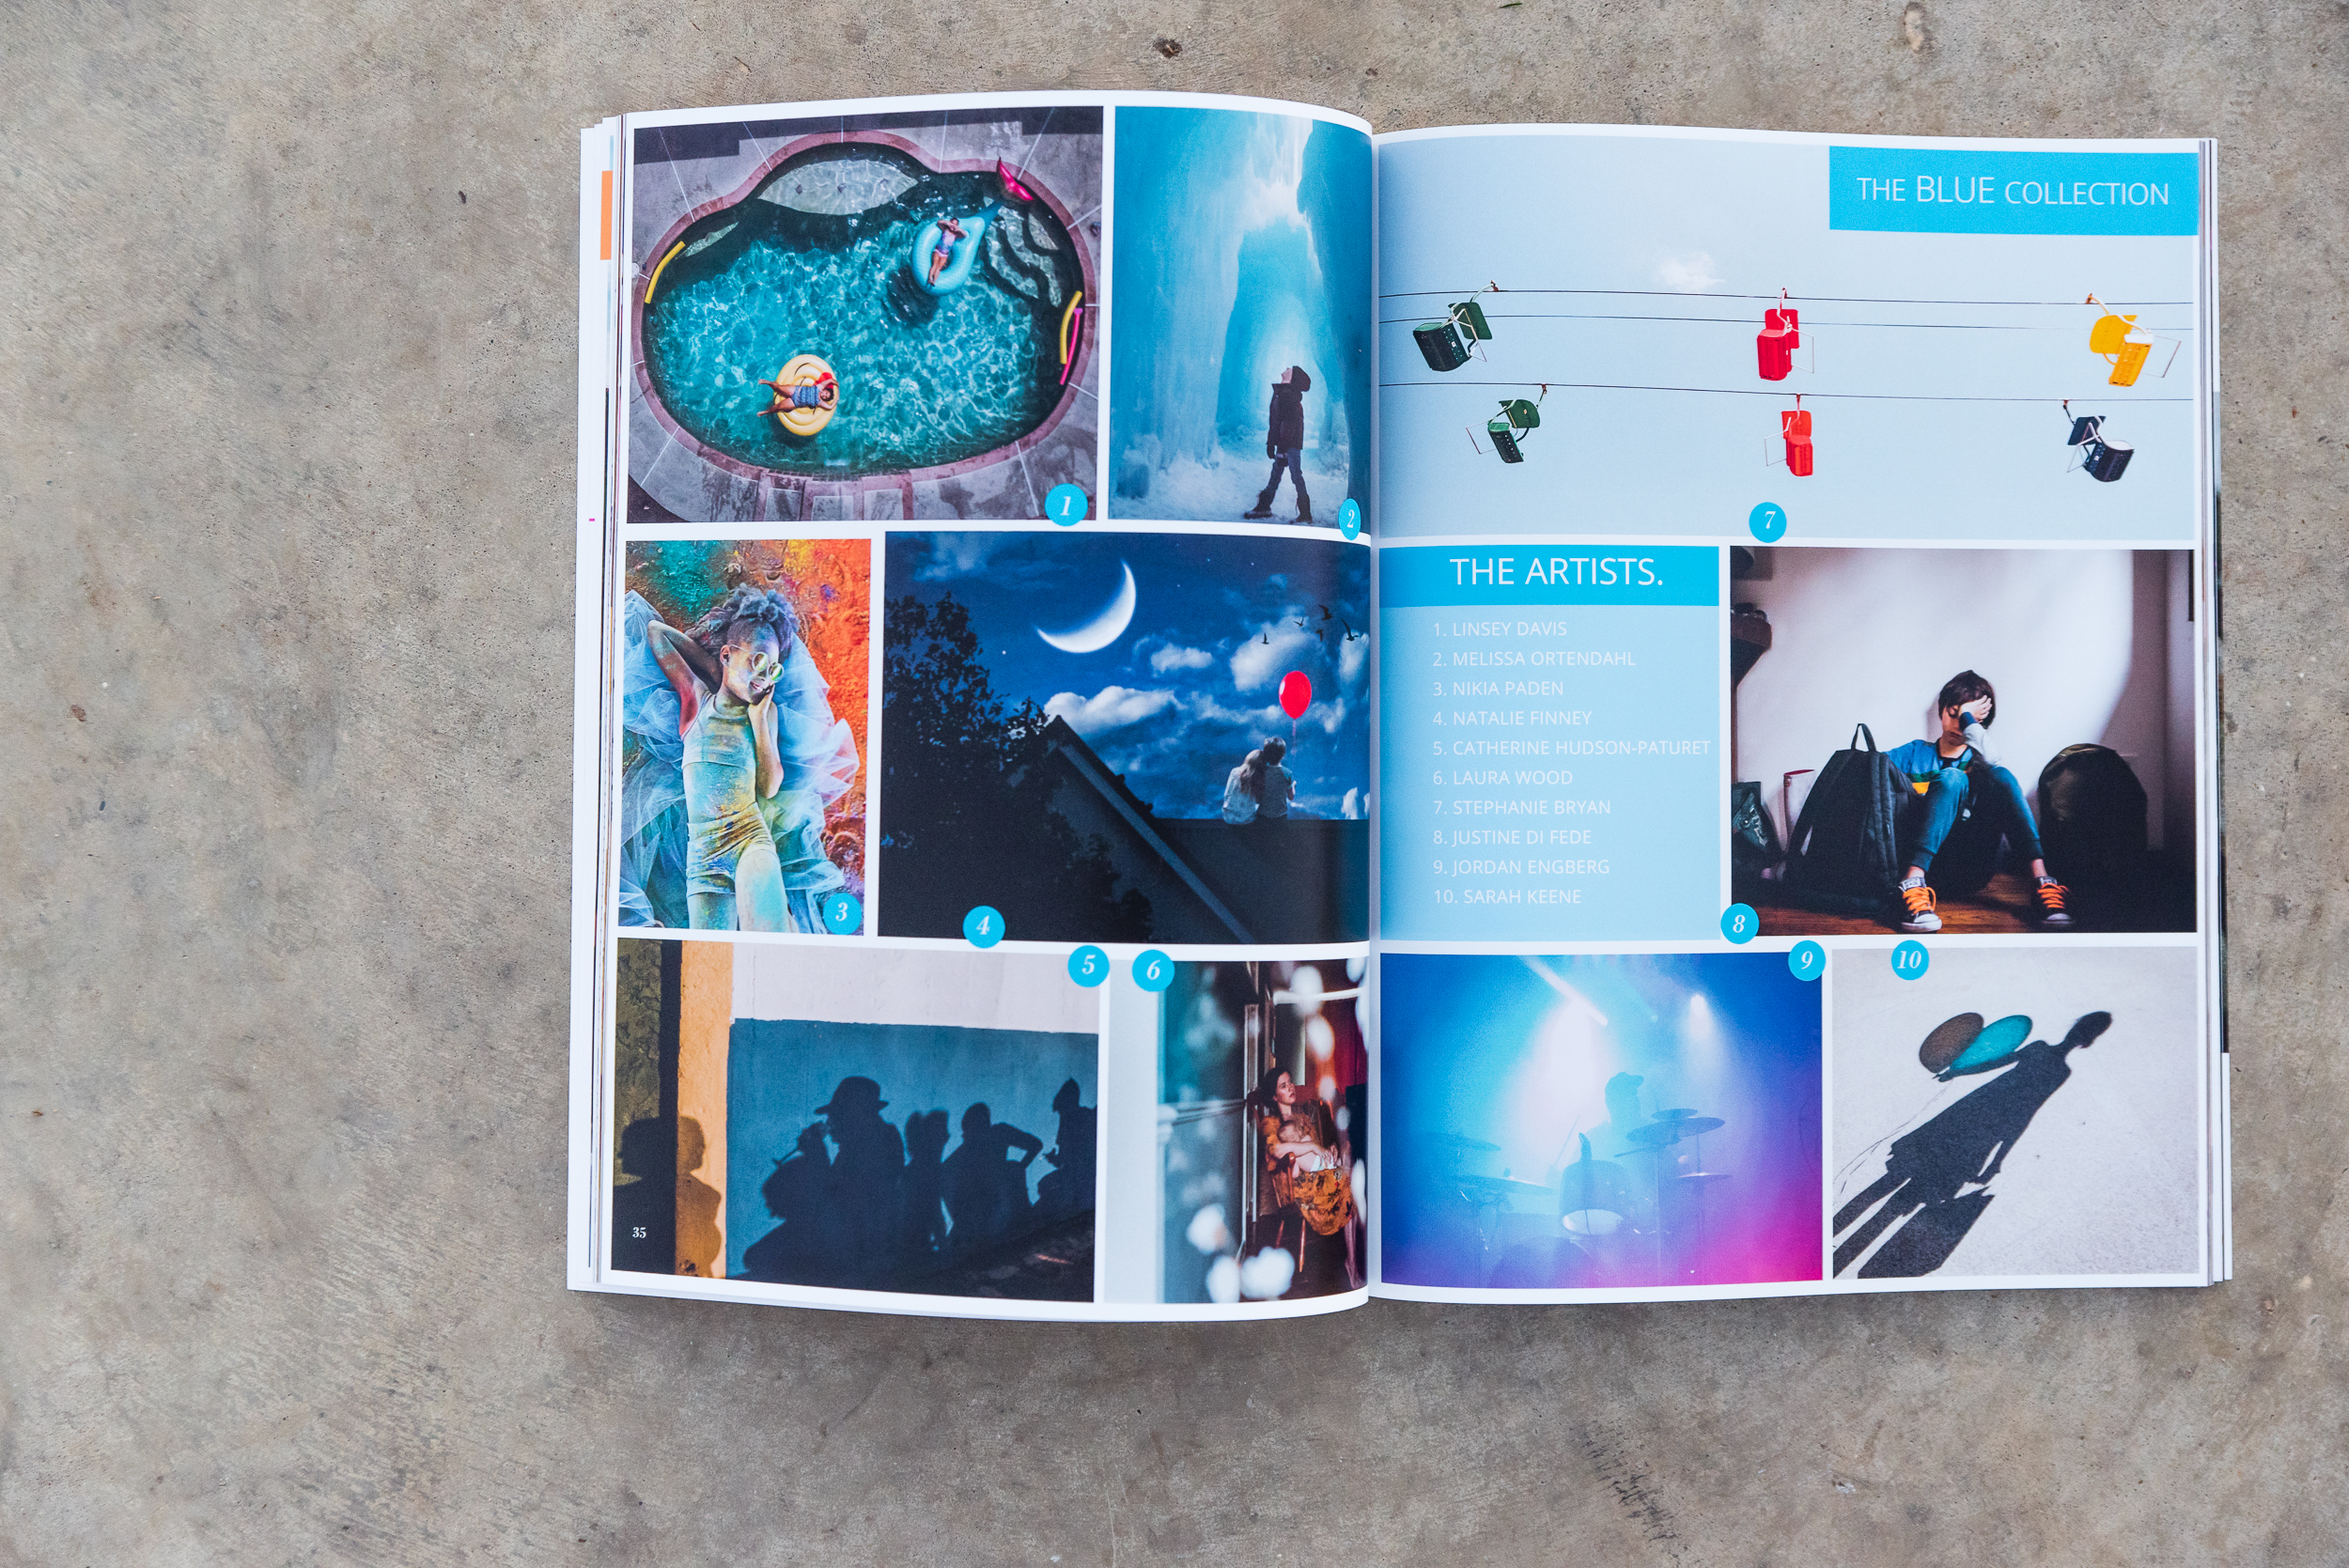 Blue collection in the Color issue of the Dear Photographer maga